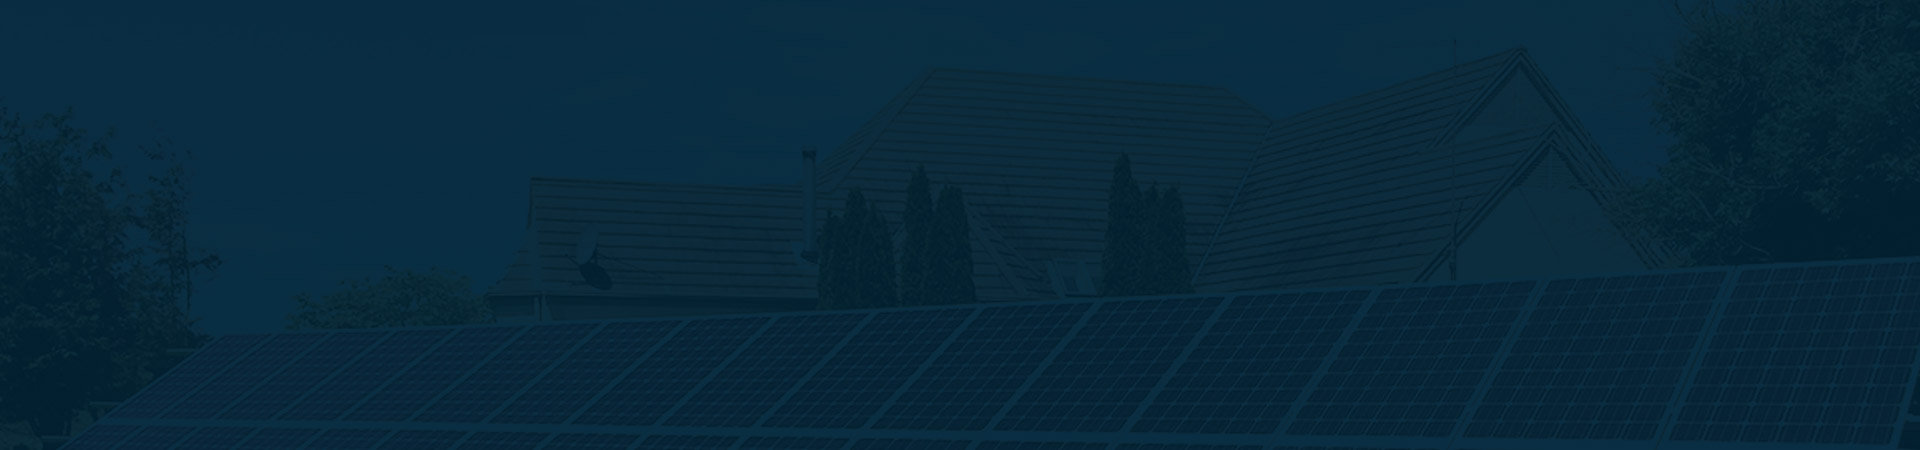 switchenergy-banner